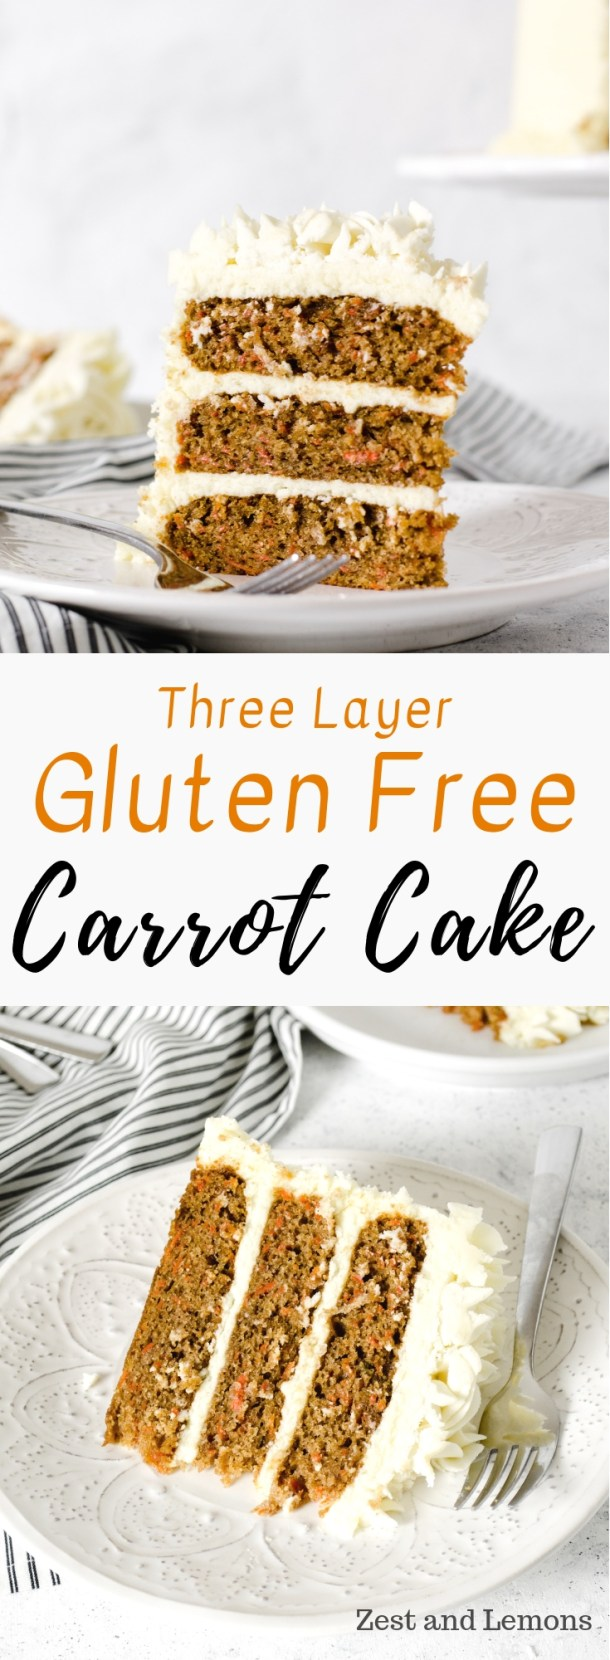 Three layer gluten free carrot cake with cream cheese frosting - Zest and Lemons #glutenfree #glutenfreecake #carrotcake